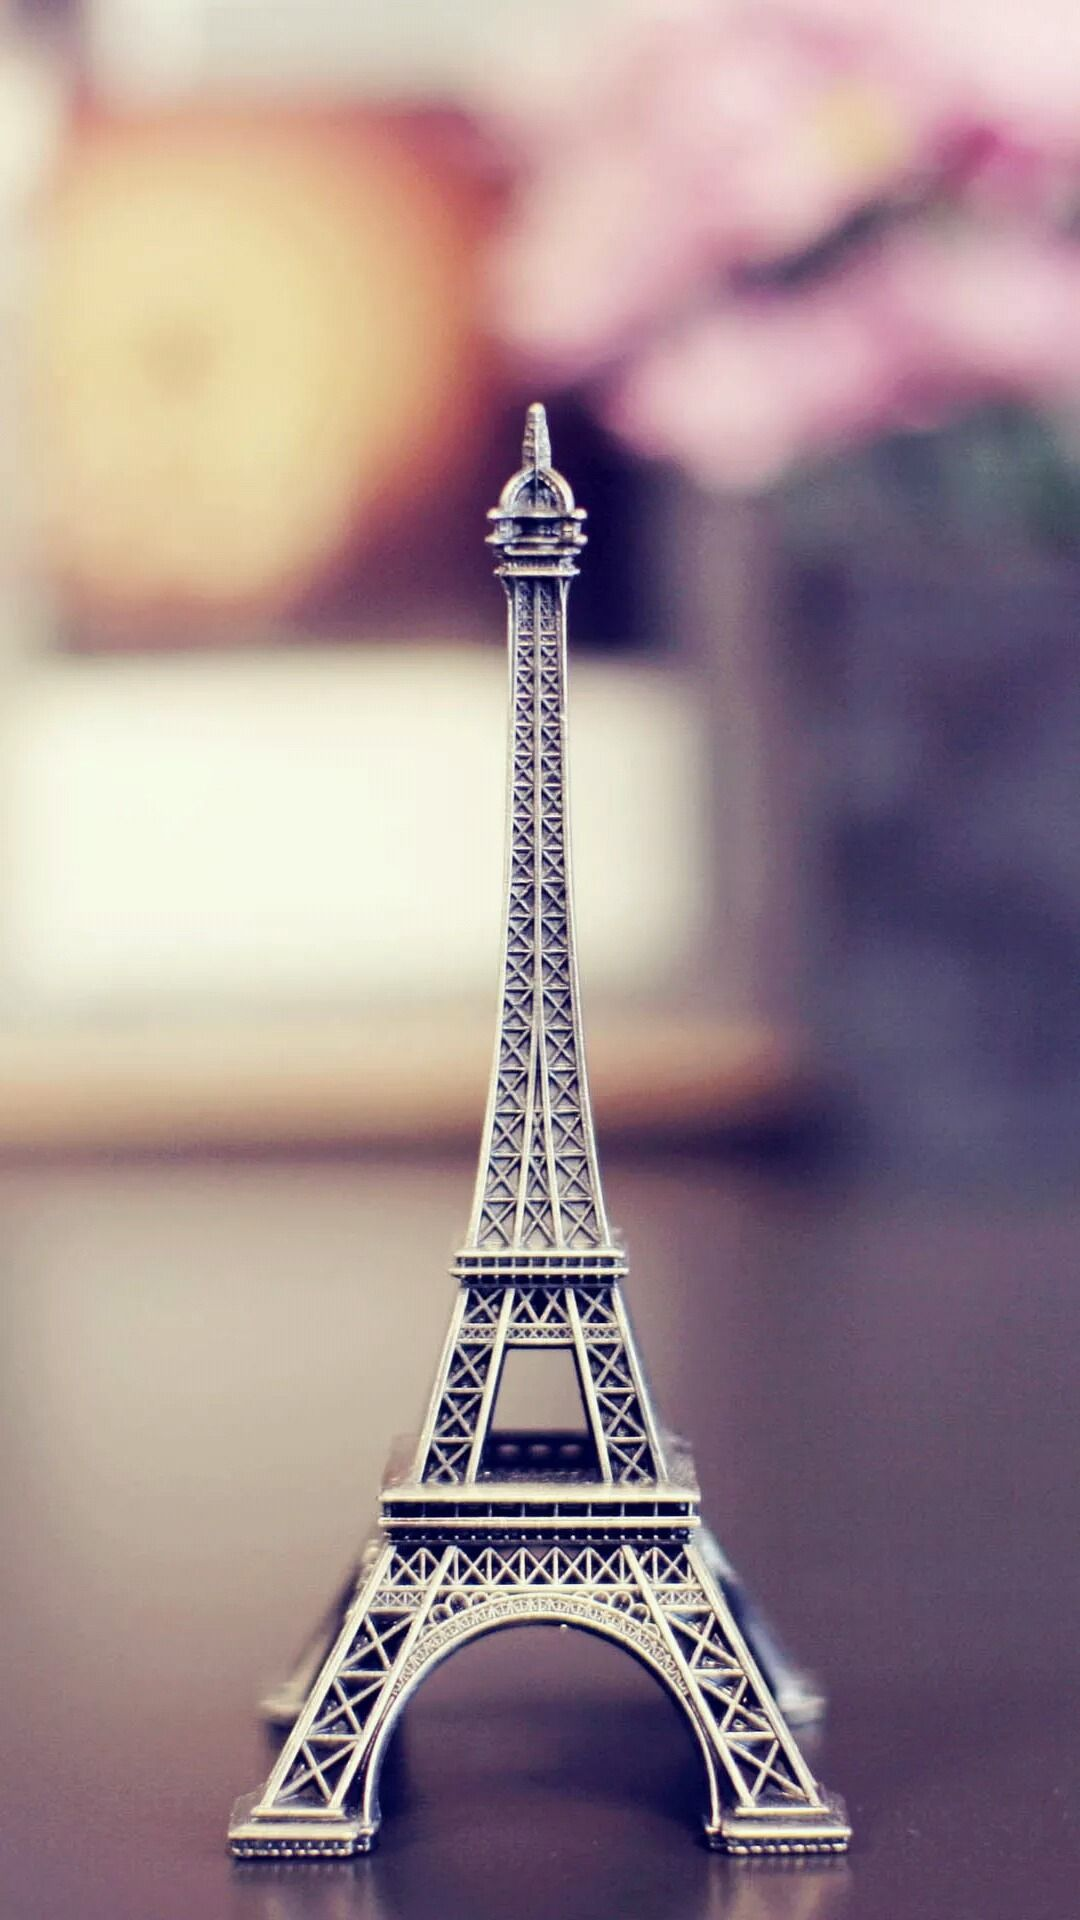 Cute Eiffel Tower Paris Wallpaper Paris Wallpaper Iphone Eiffel Tower